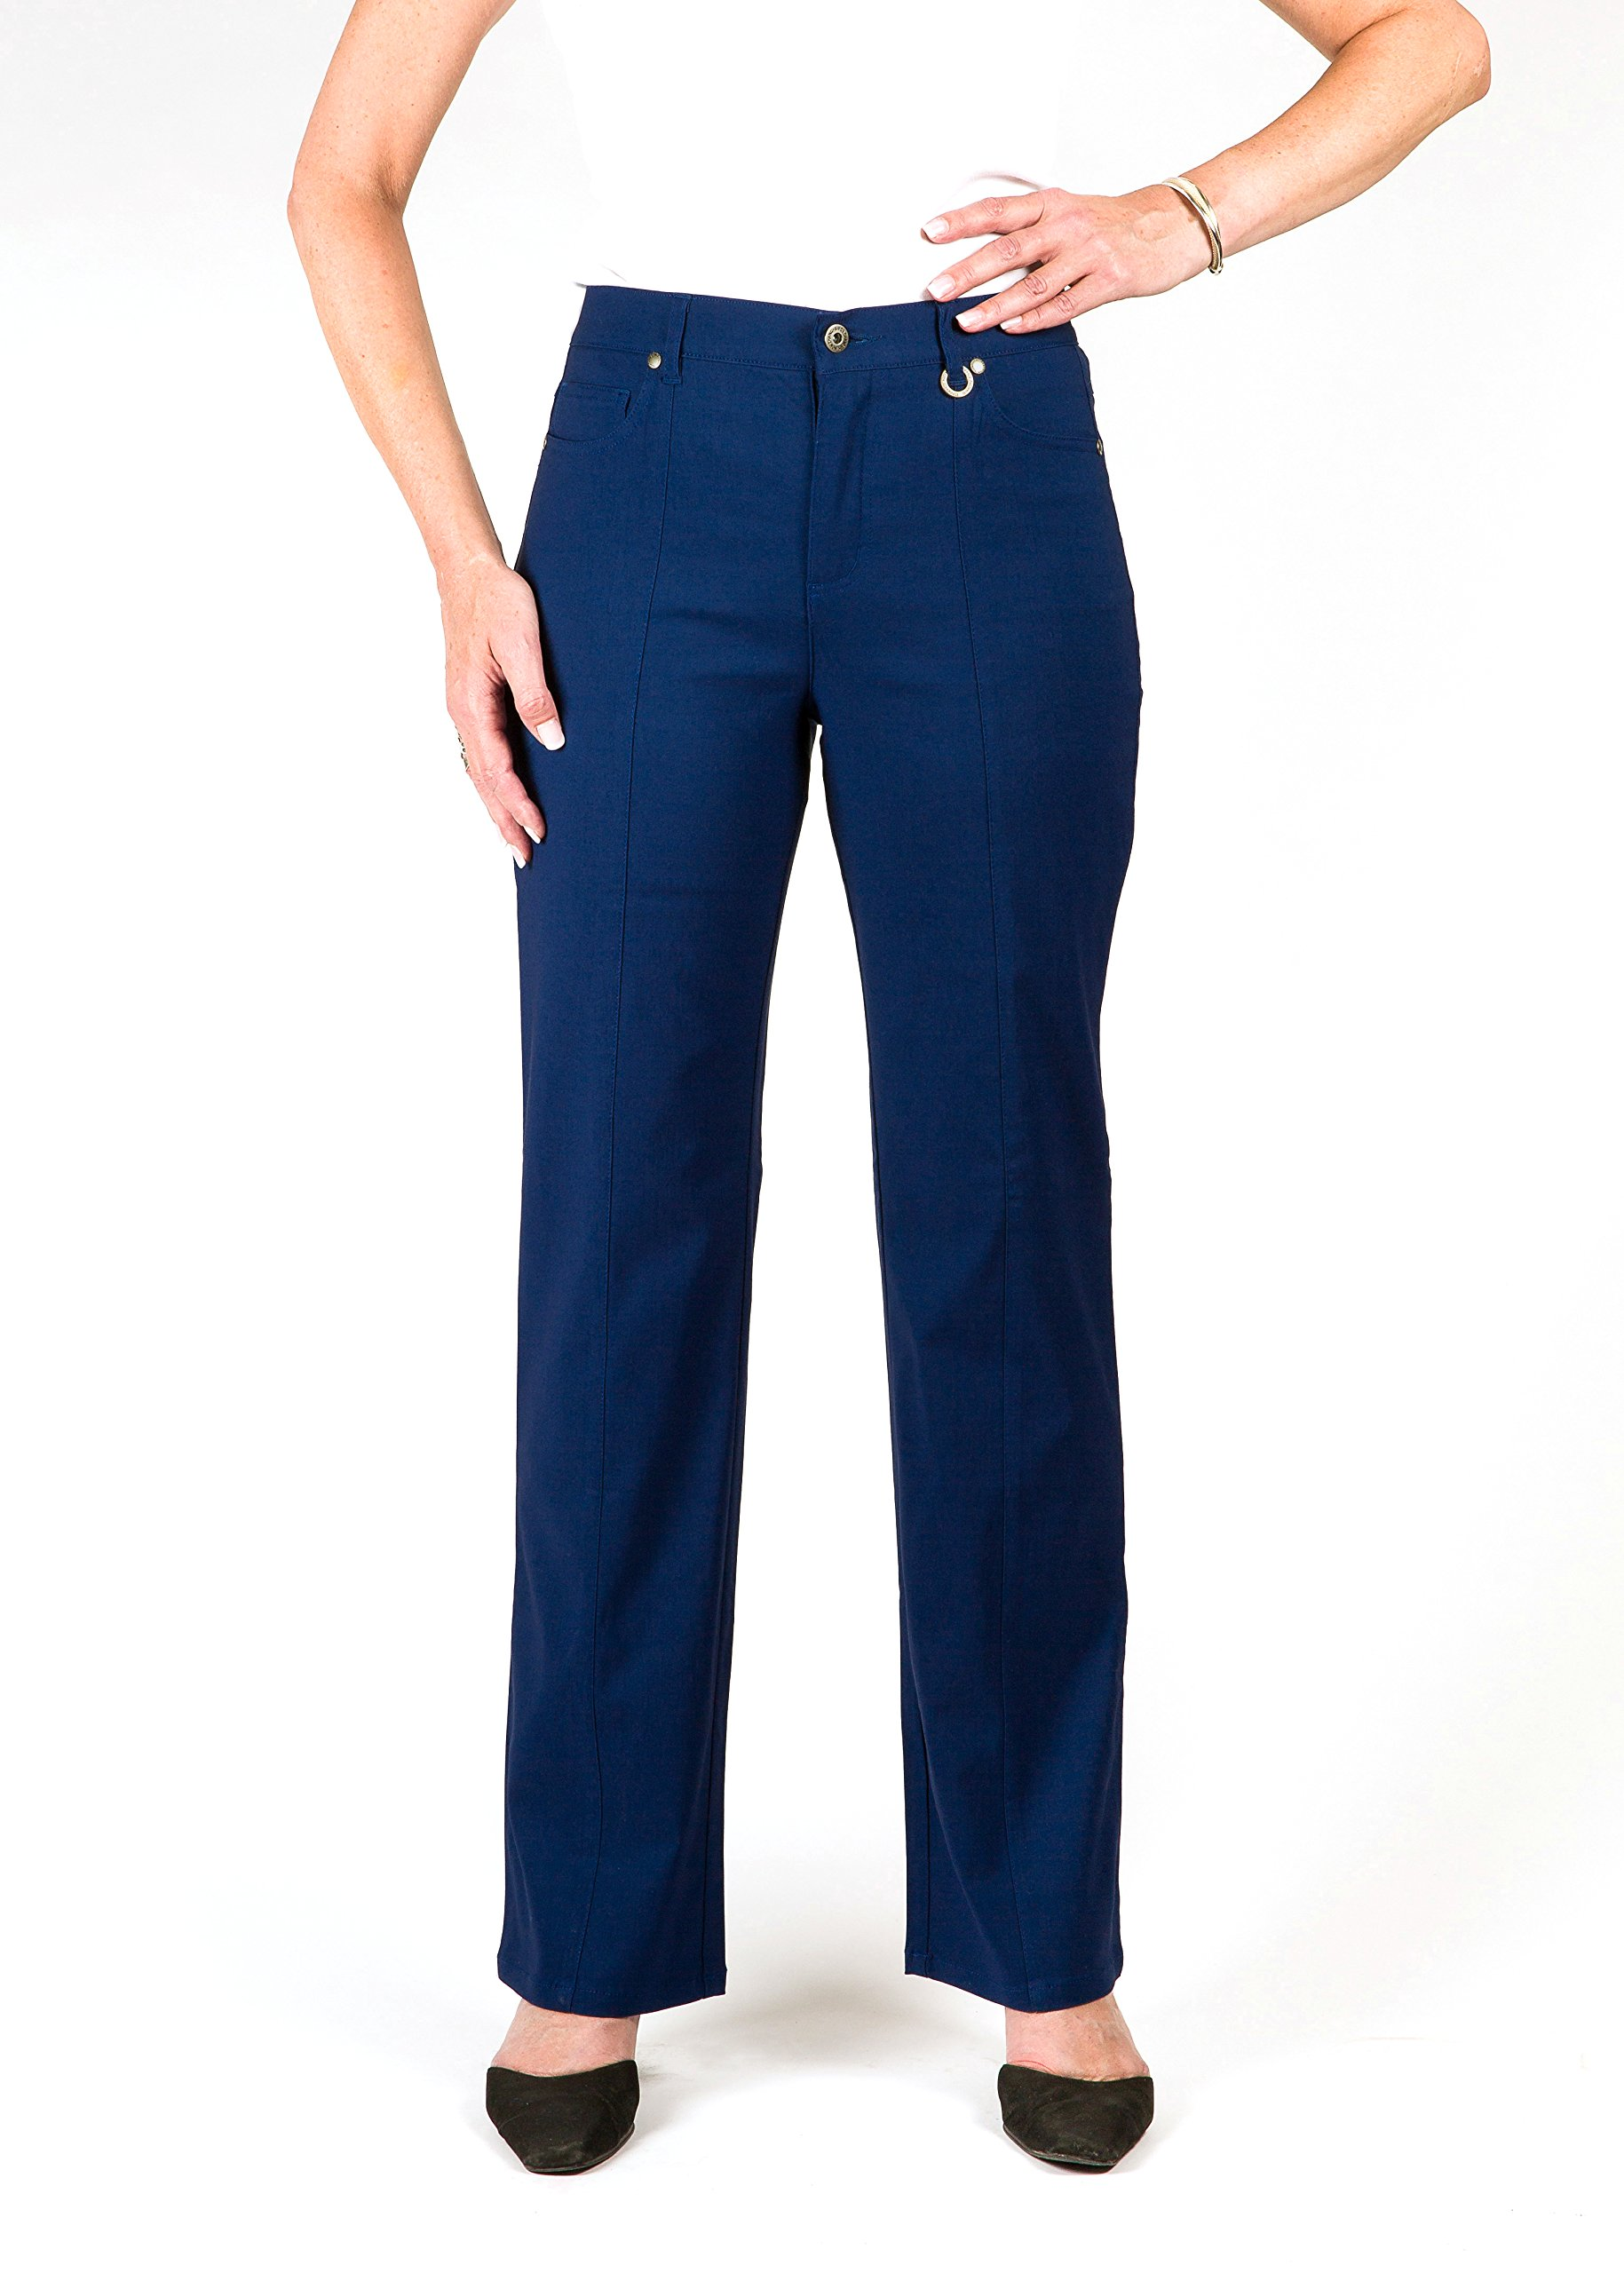 *Petite* Simon Chang 5 Pocket Straight Leg Microtwill Pant Style#3-5302P (14 PT, Navy)